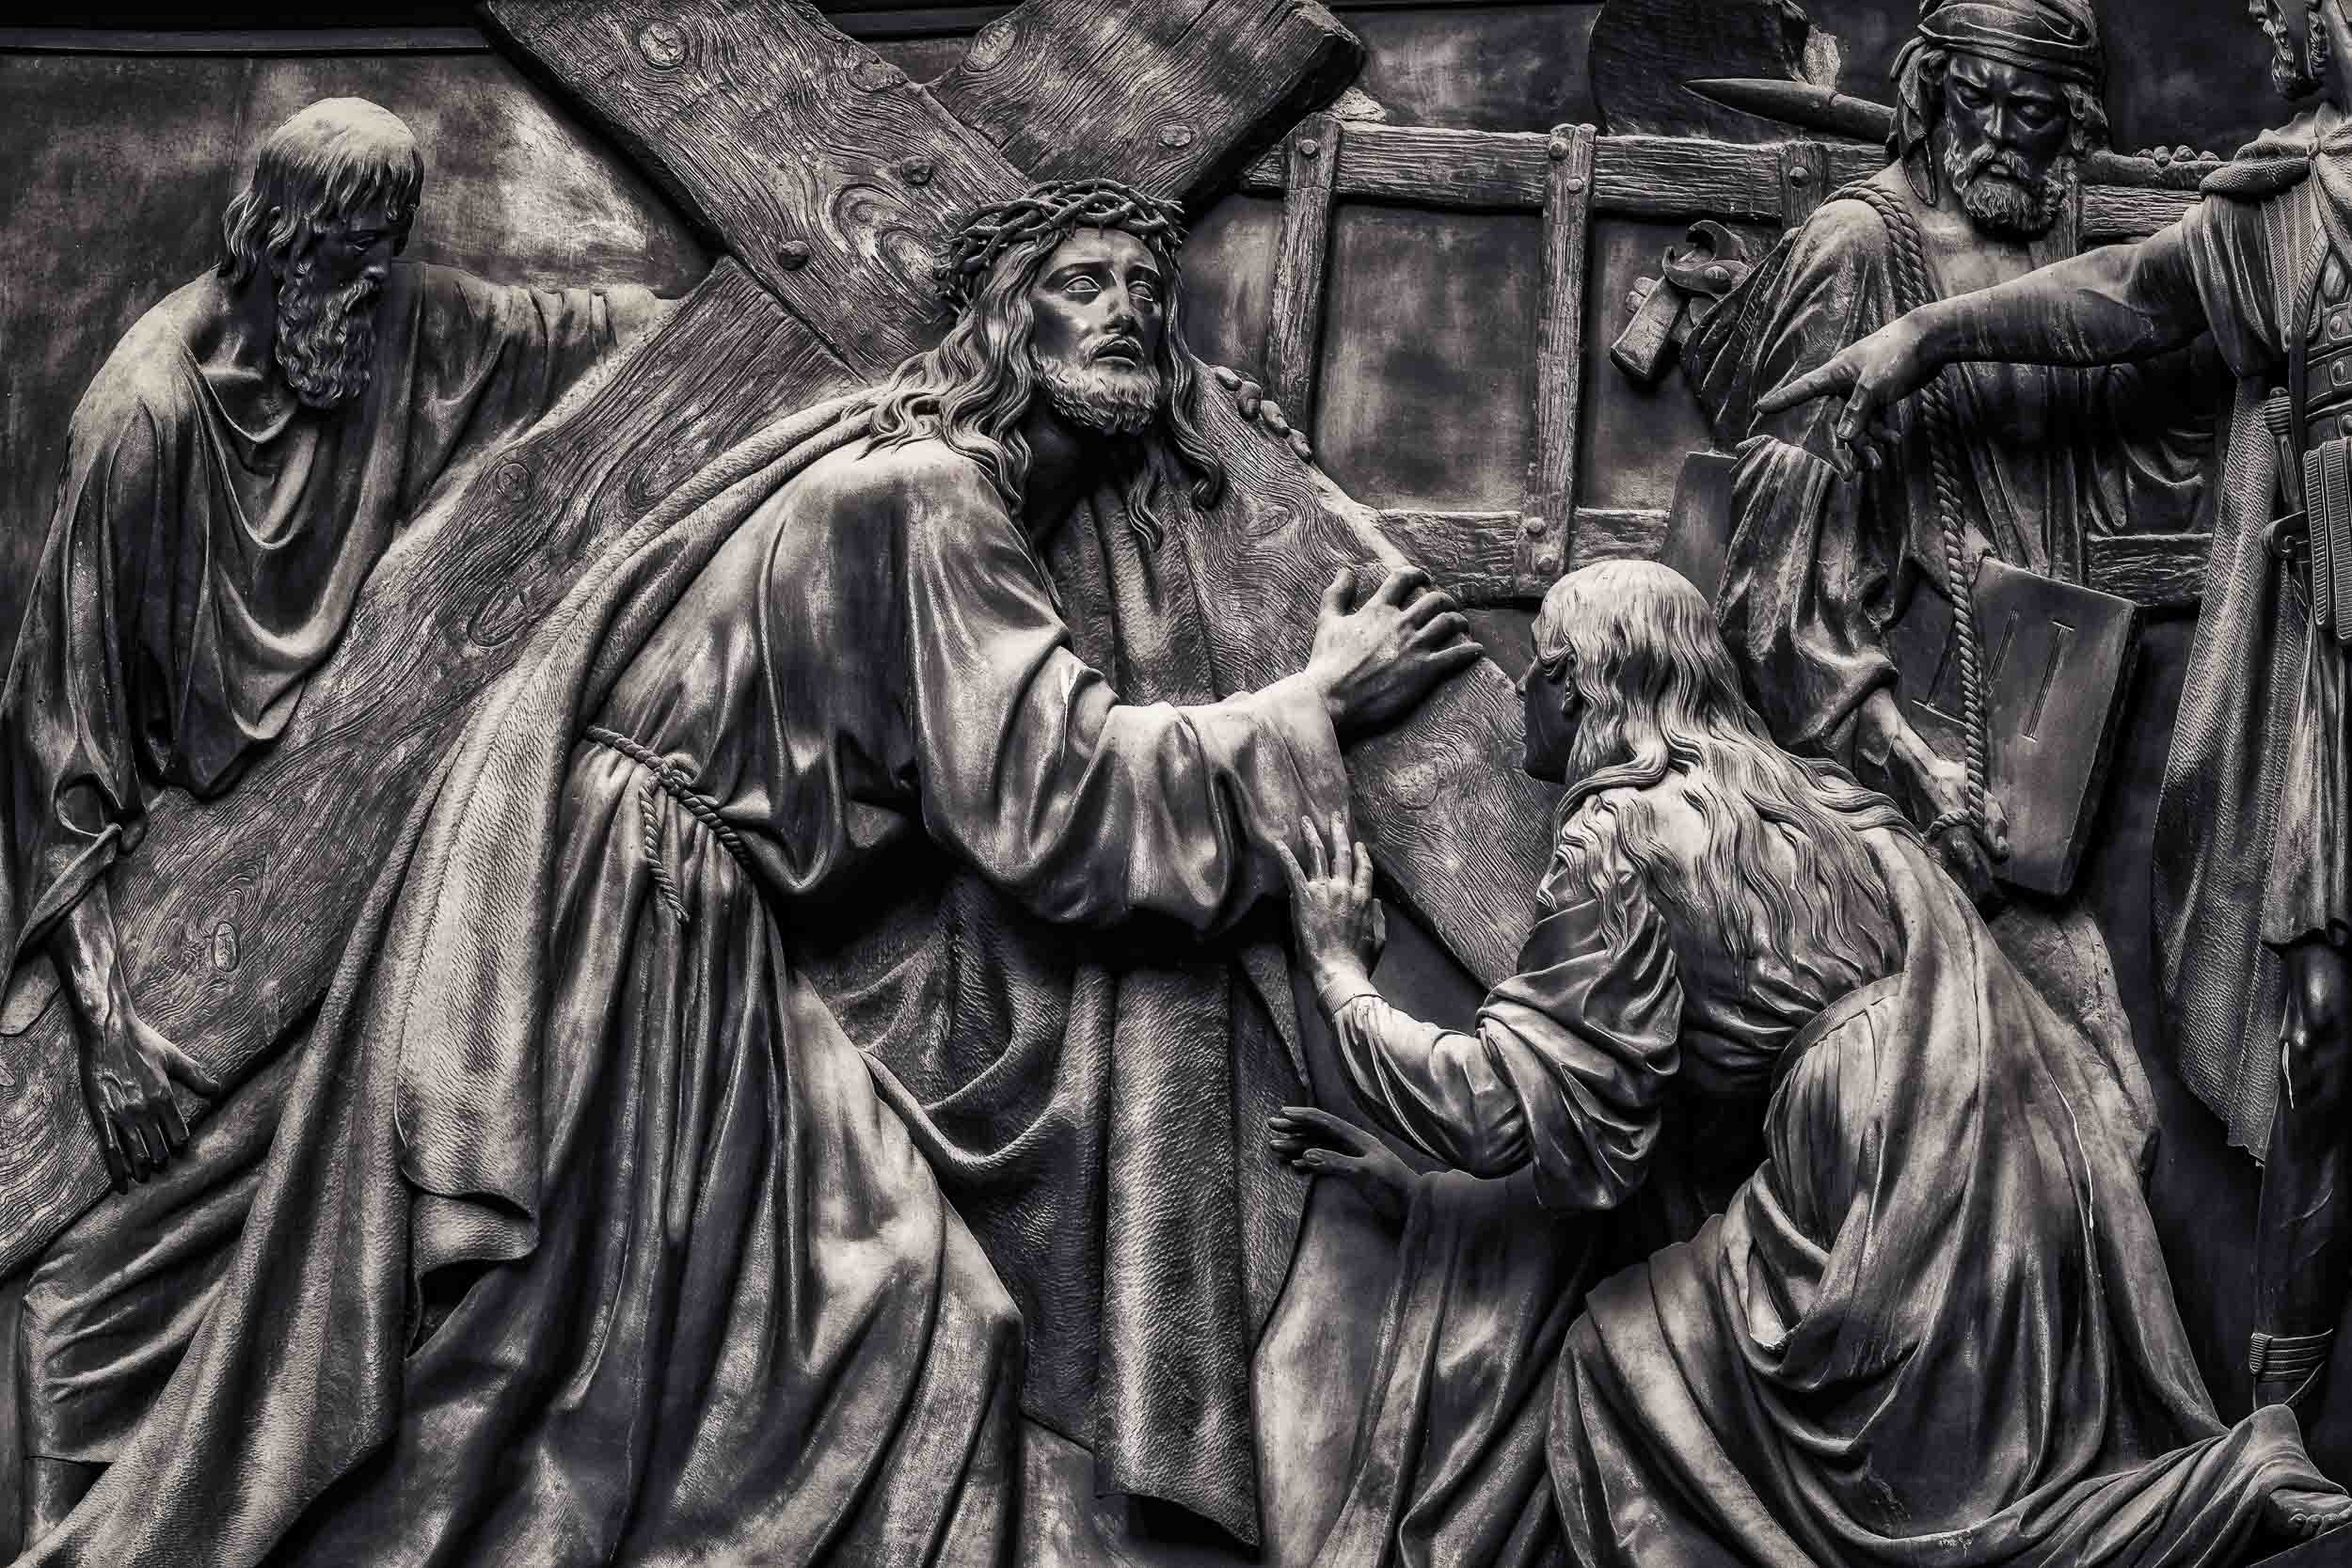 Stunning relief of the road to Calvary on an outside wall of the magnificent    St. Isaac's Cathedral    in    St. Petersburg, Russia   .